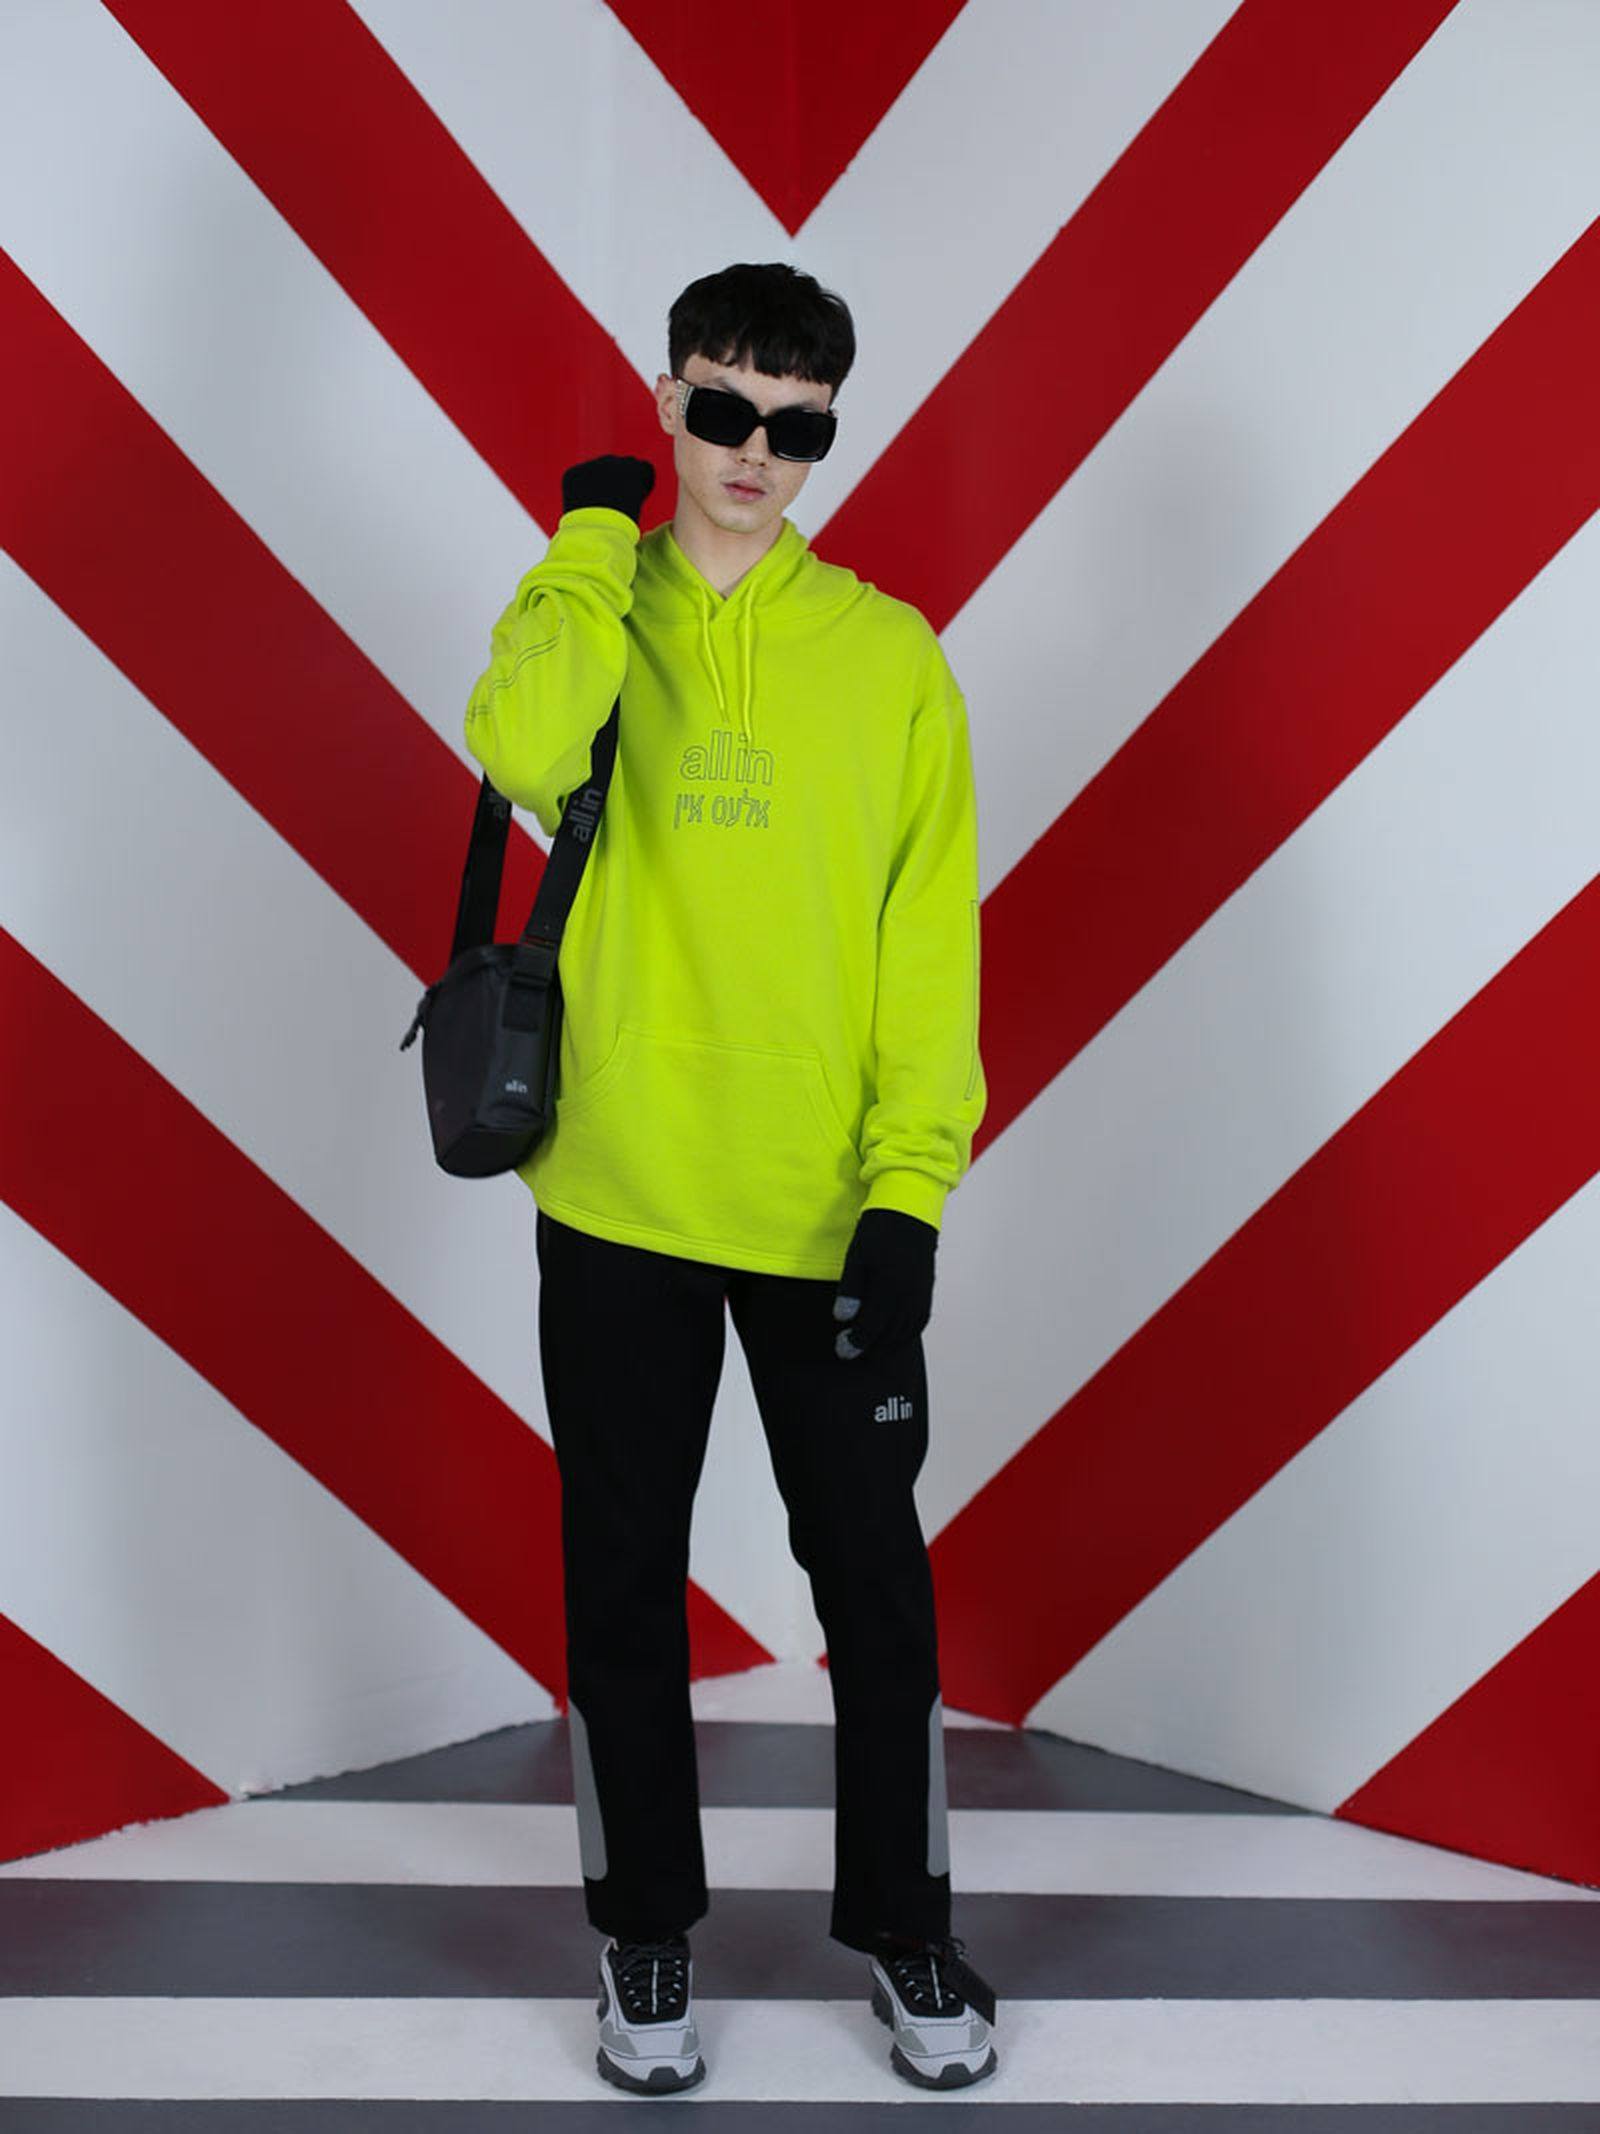 54all in ss19 lookbook